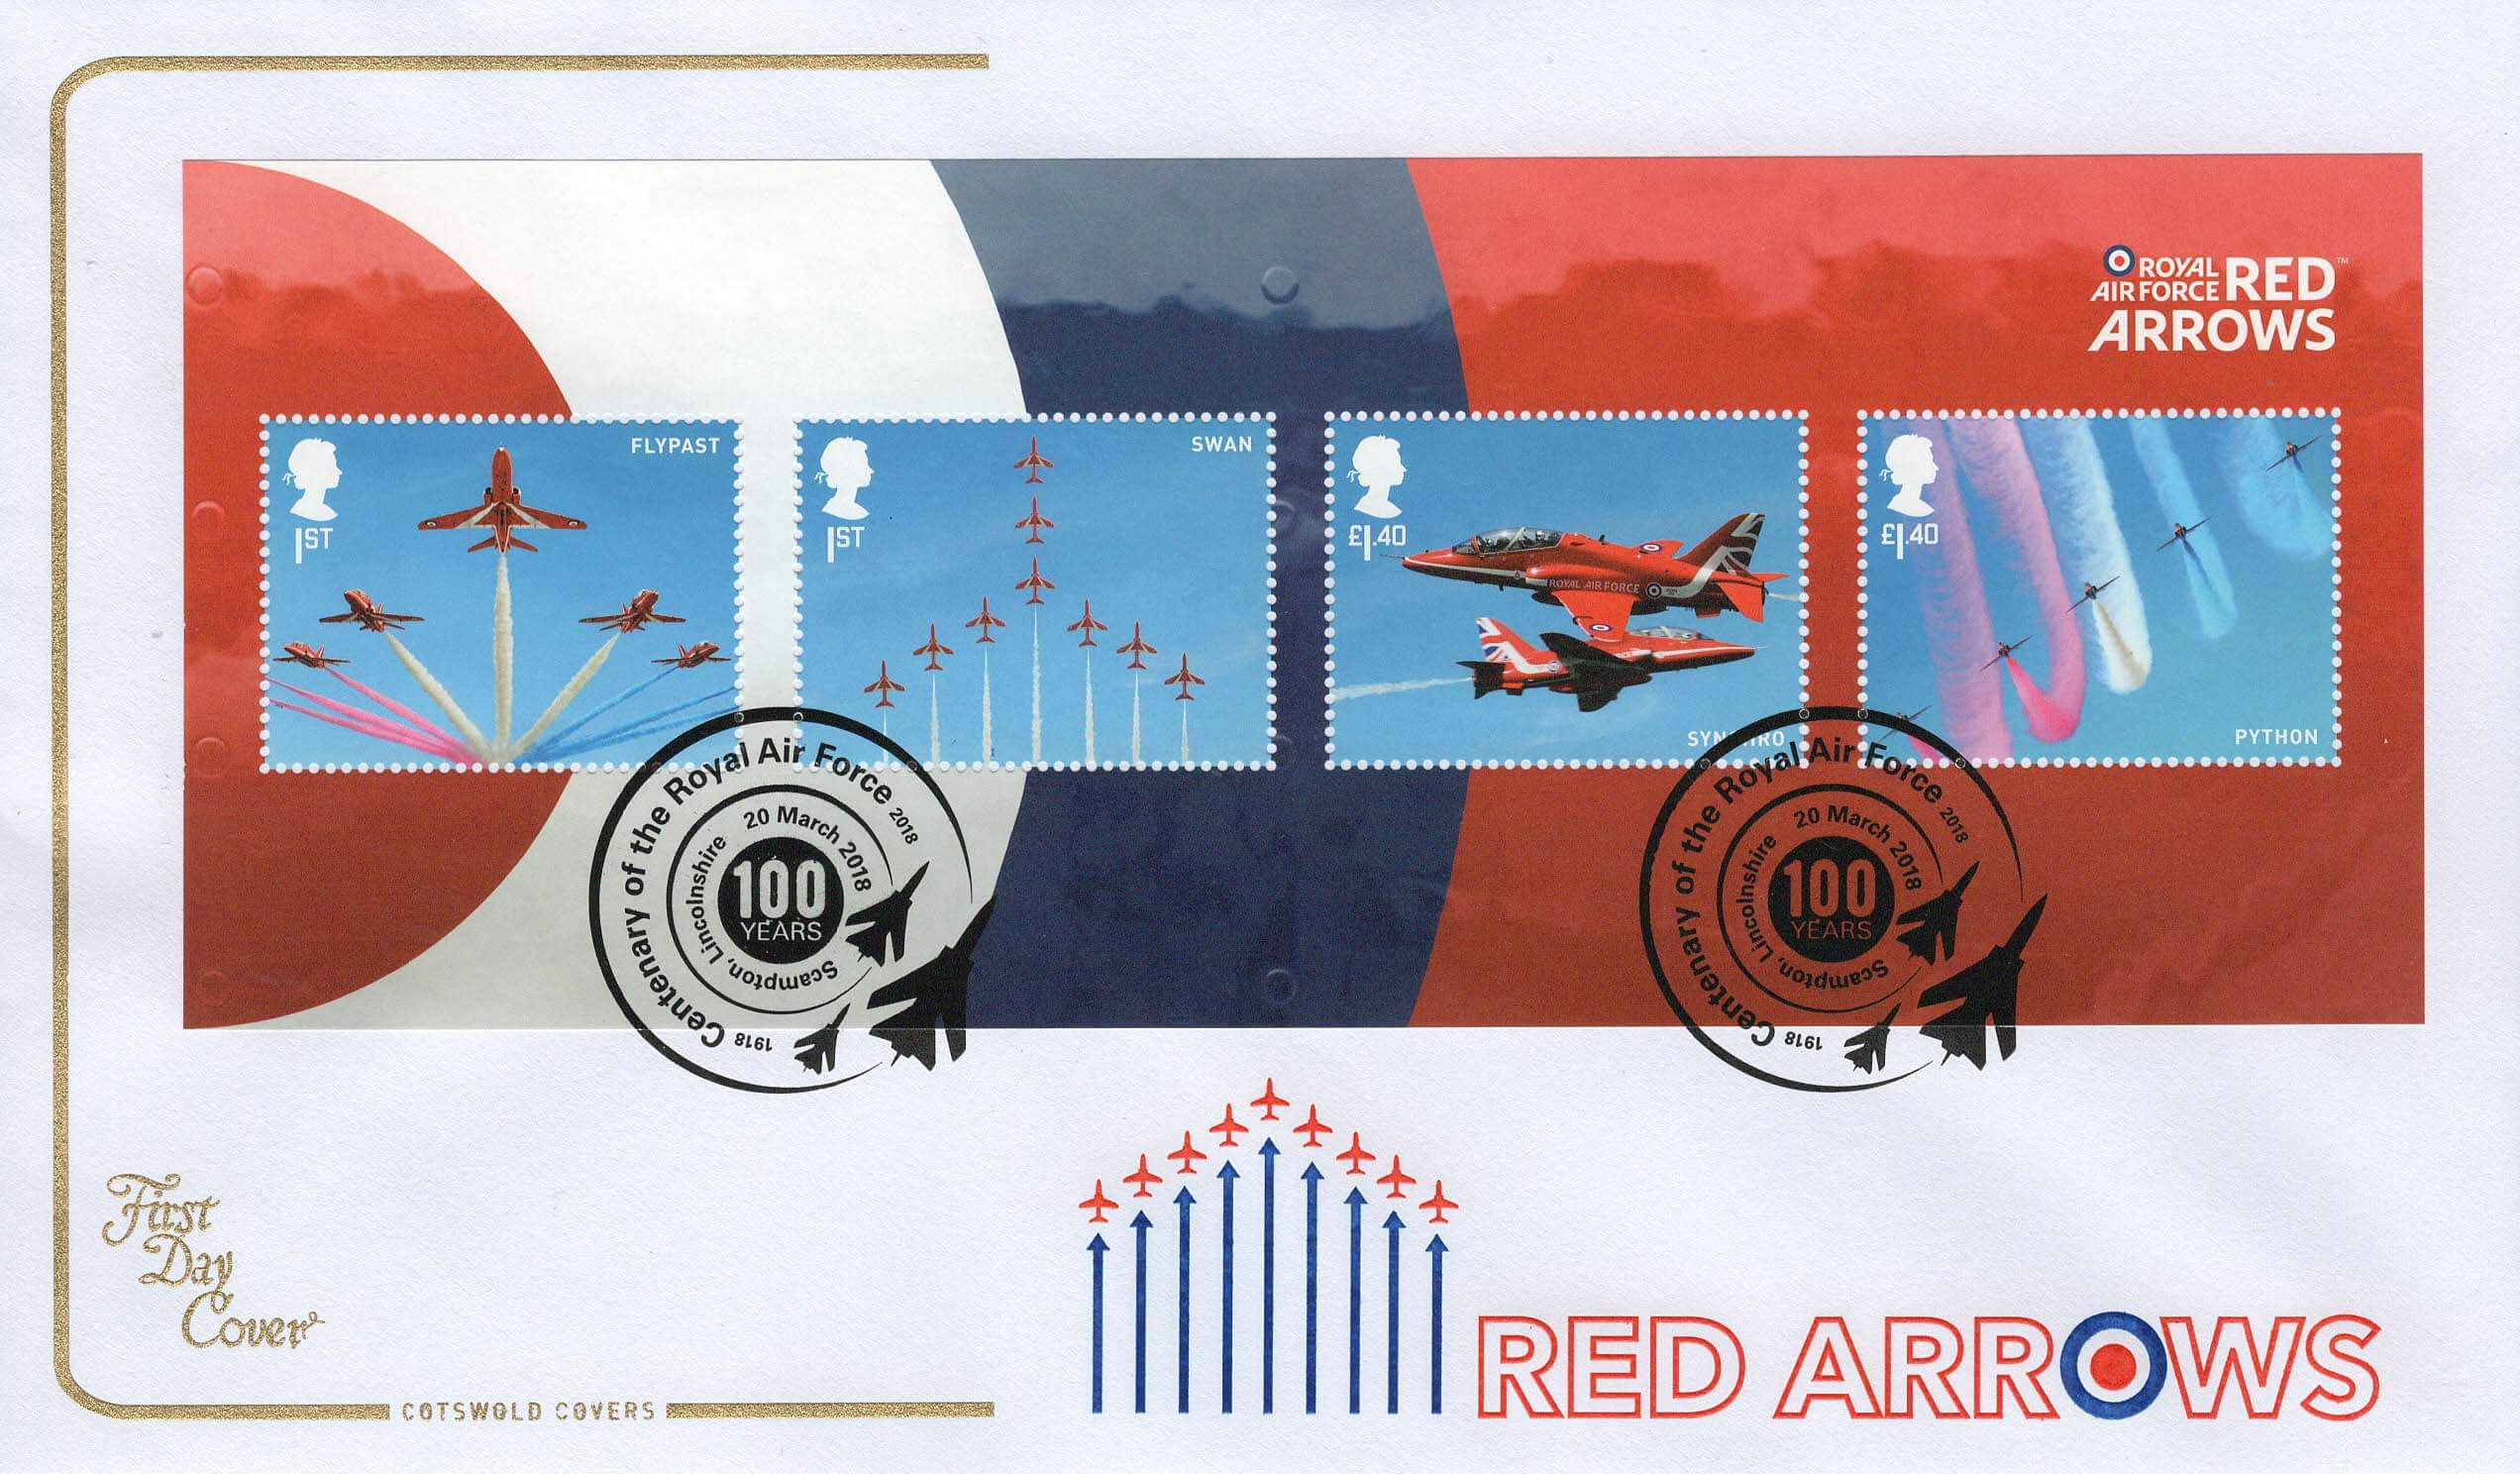 RAF Centenary stamps and Red Arrows too!